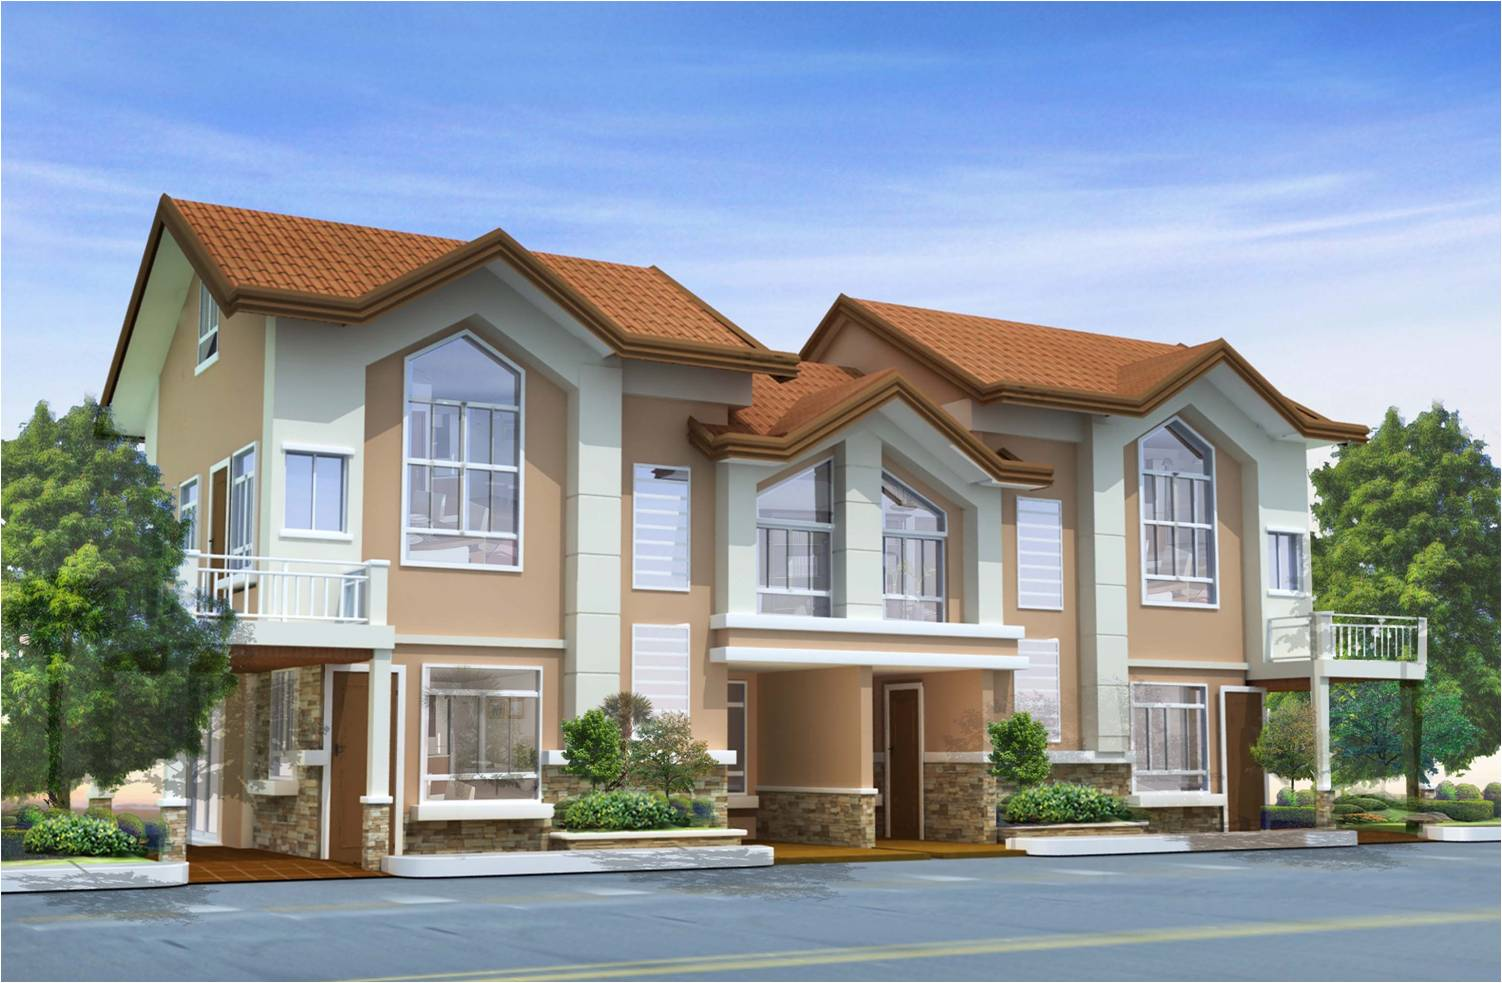 Get Best Property Deals From Real Estate Agencies